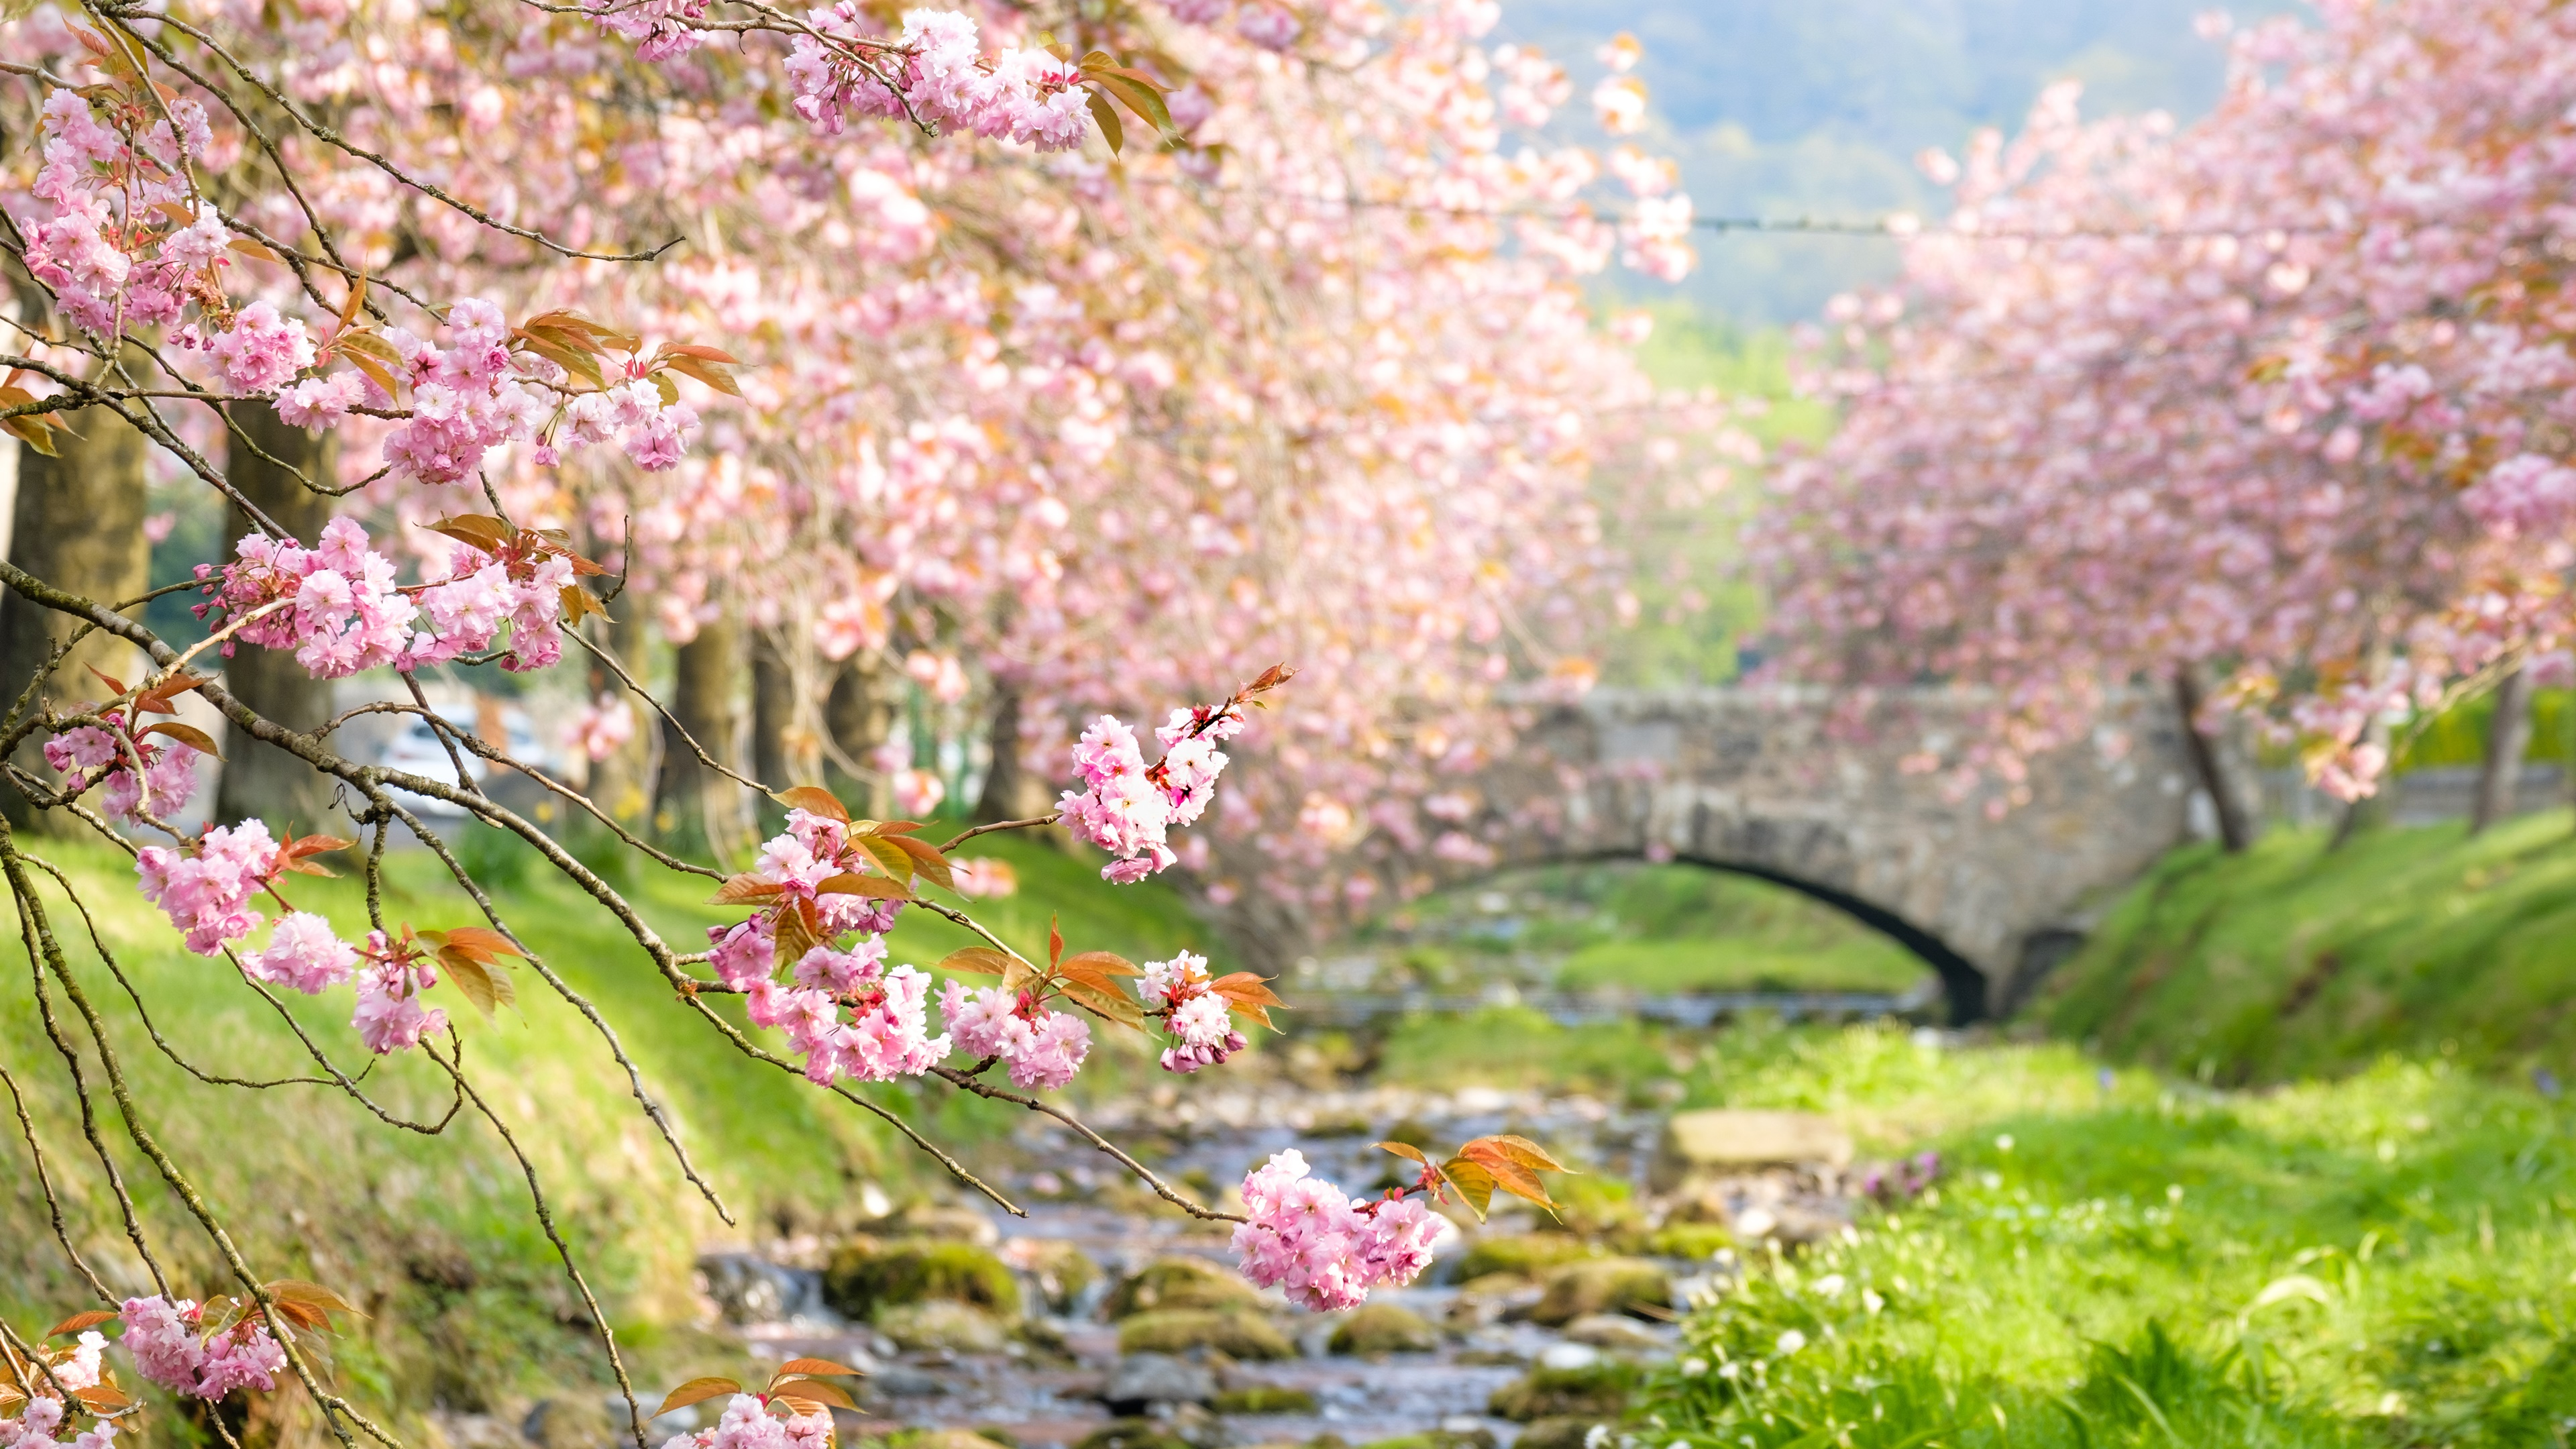 Cherry Blossom Trees 4k Ultra Hd Wallpaper Background Image 3840x2160 Id 1000500 Wallpaper Abyss